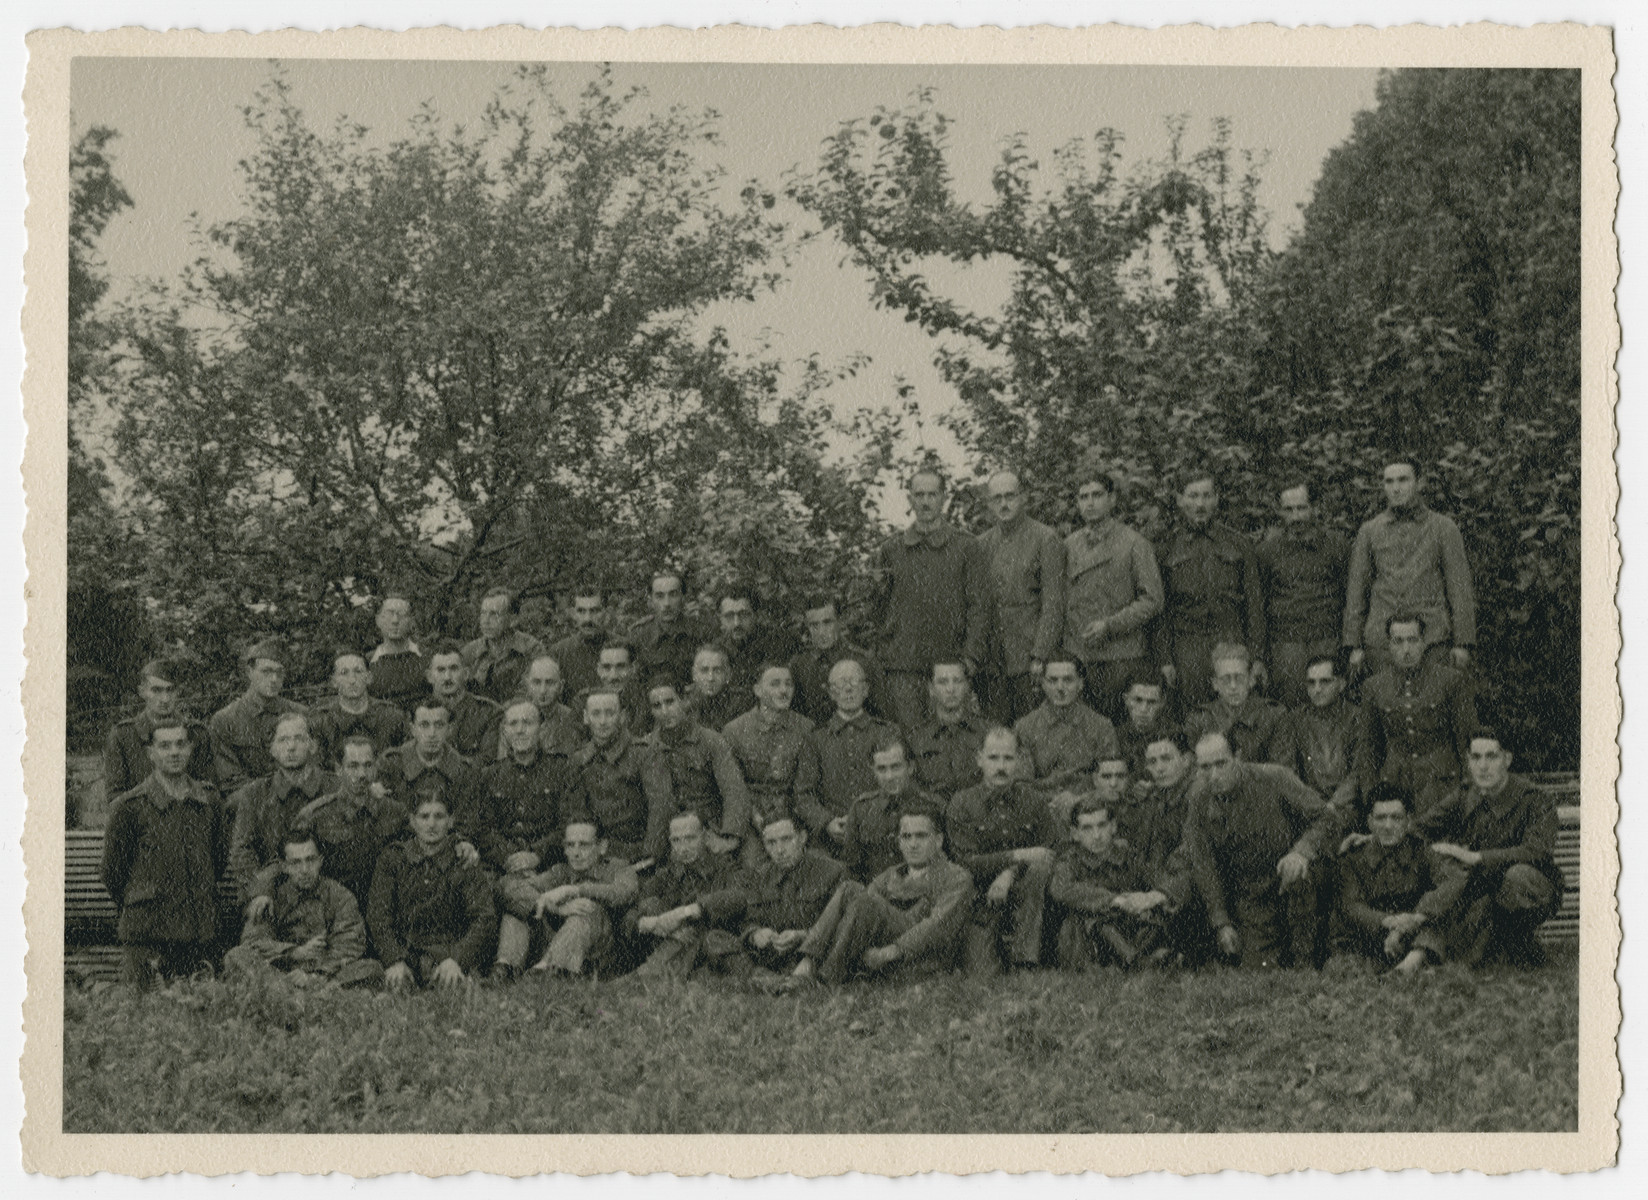 Group portrait of prisoners in Stalag 10 C.  Leopold Guttman is pictured in the top row, center.